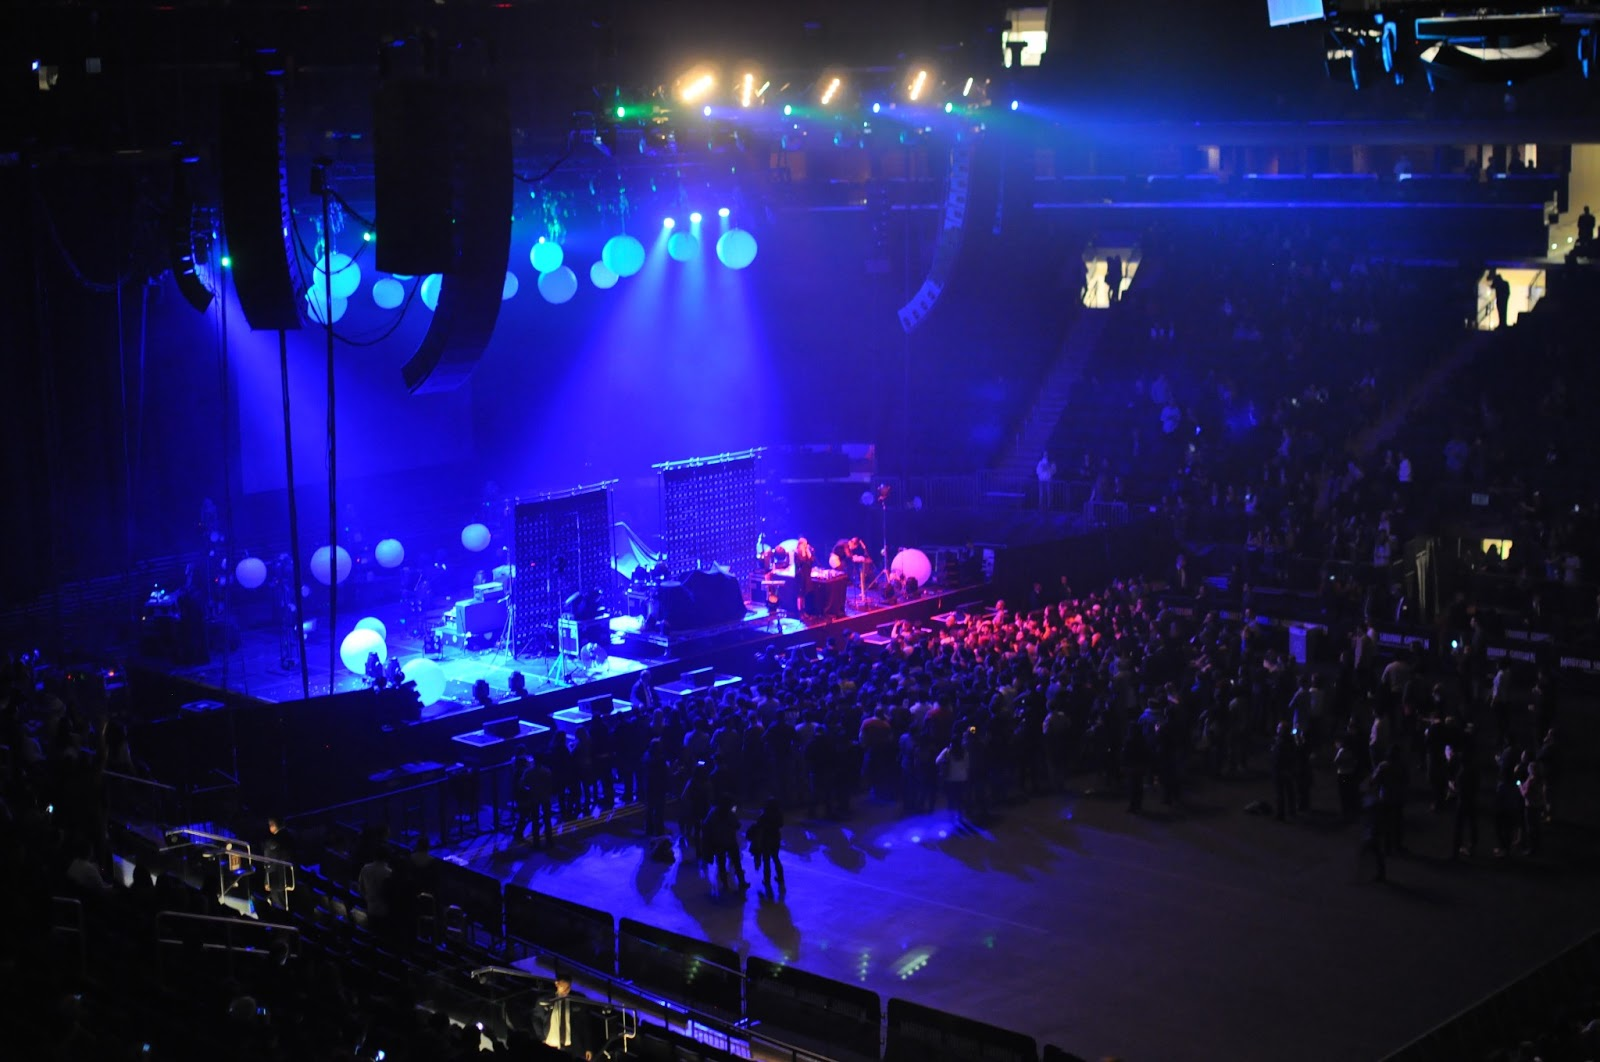 New York La Keiko Concert At Madison Square Garden Passion Pit Featuring Matt And Kim And